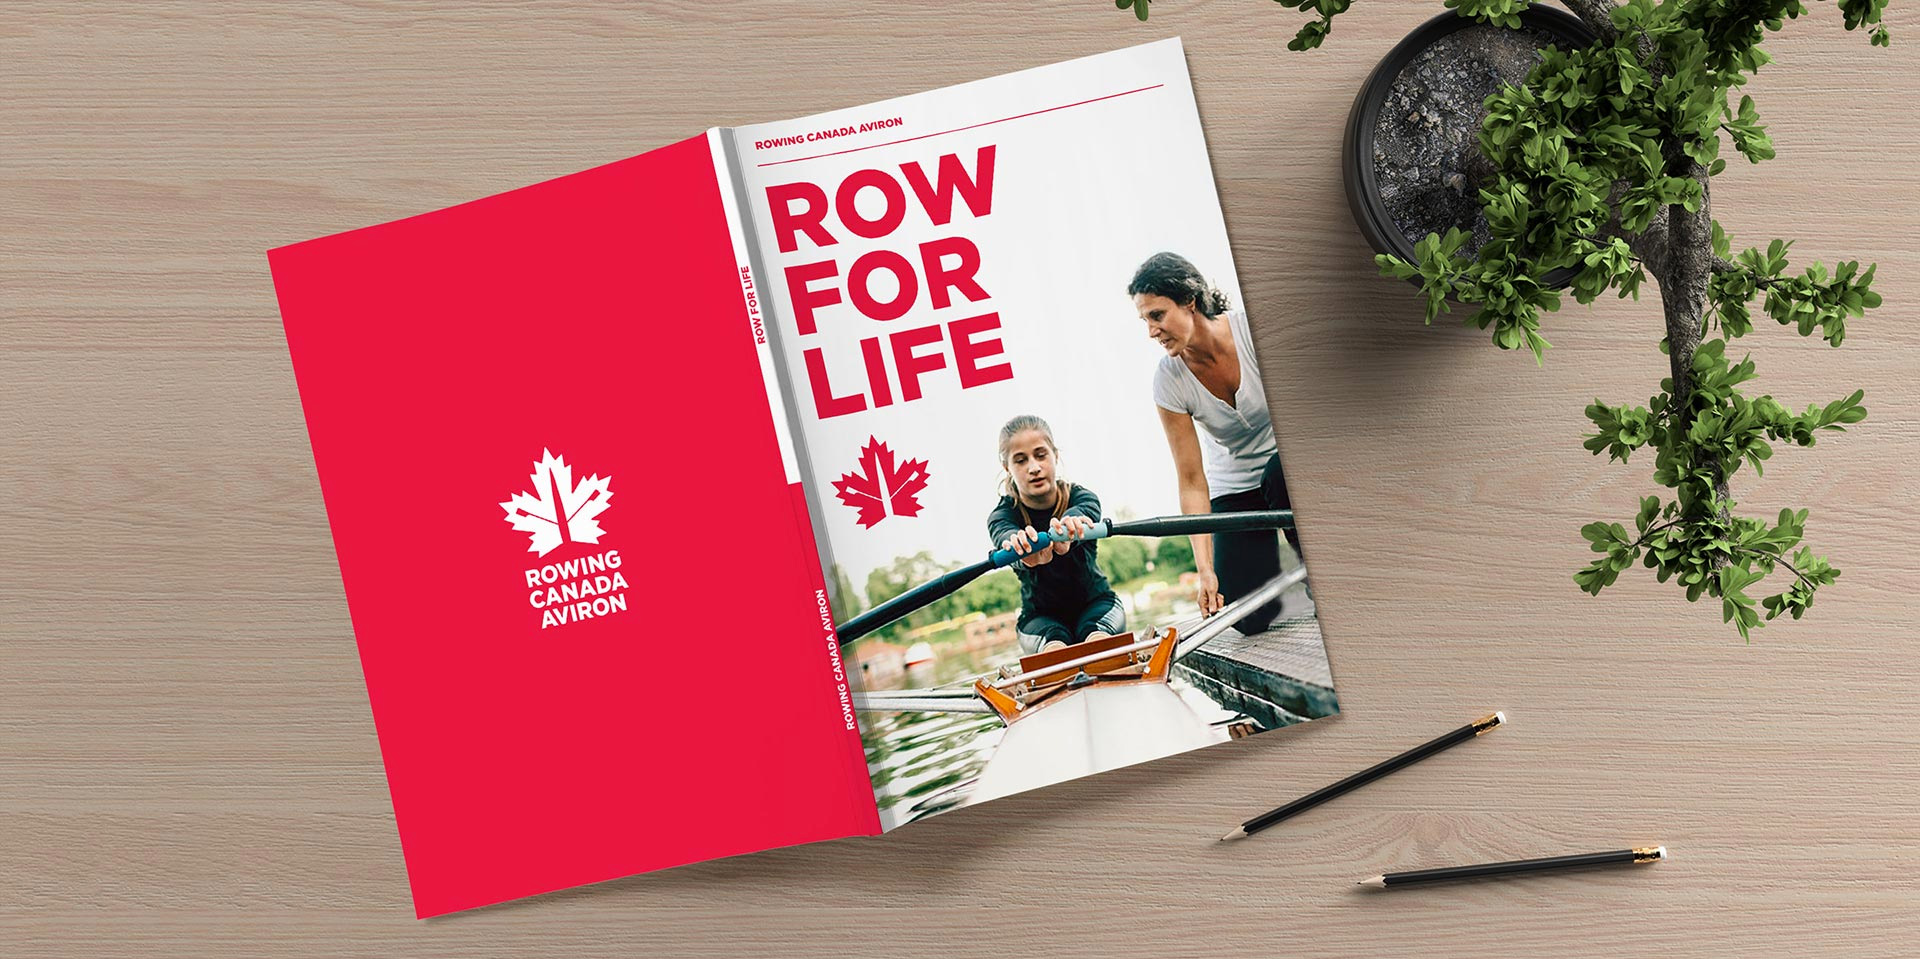 New Logo for Rowing Canada Aviron by They